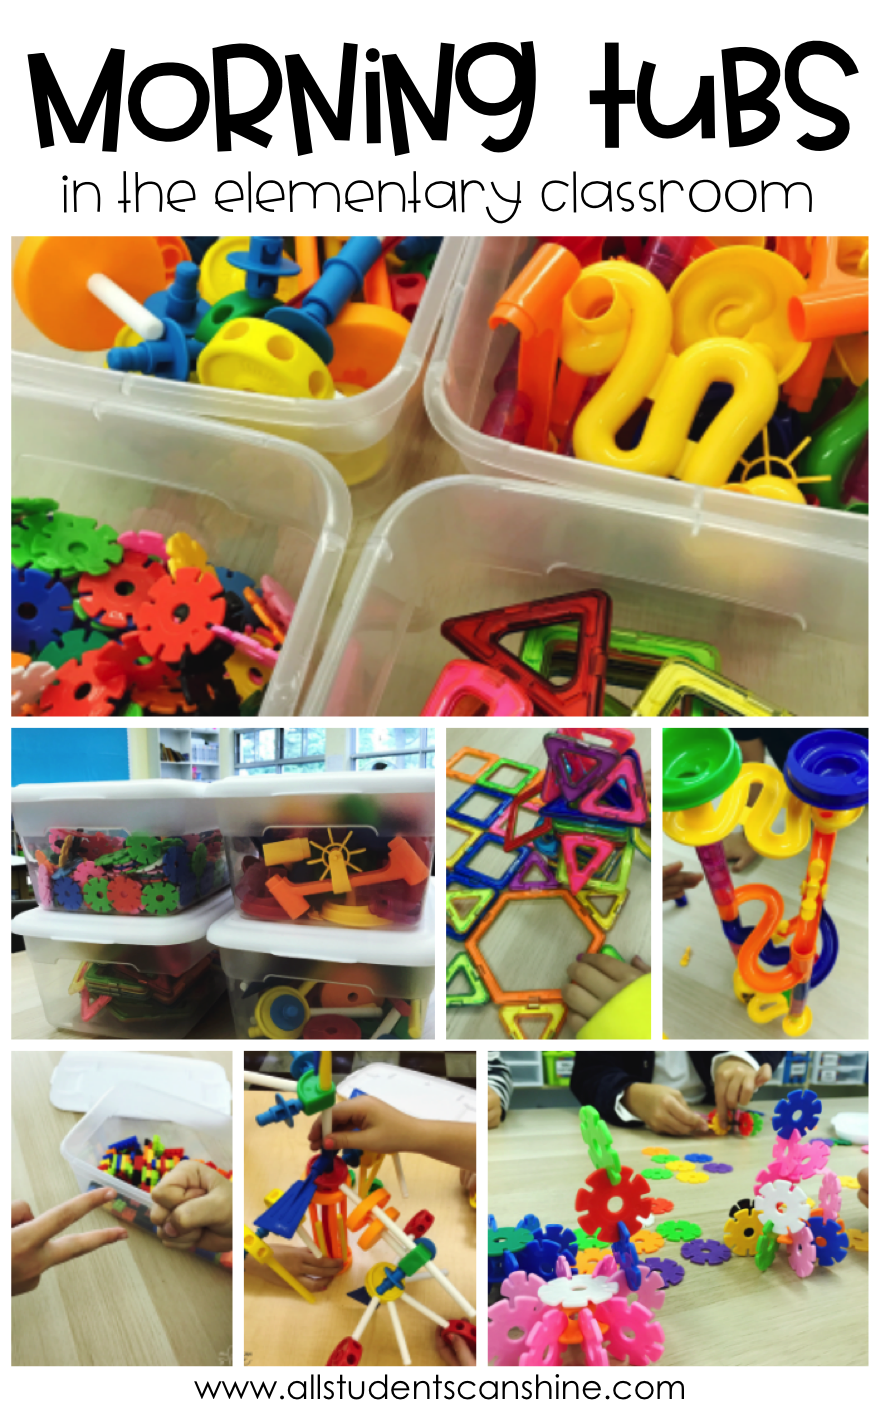 All Students Can Shine: Morning Tubs in the Elementary Classroom